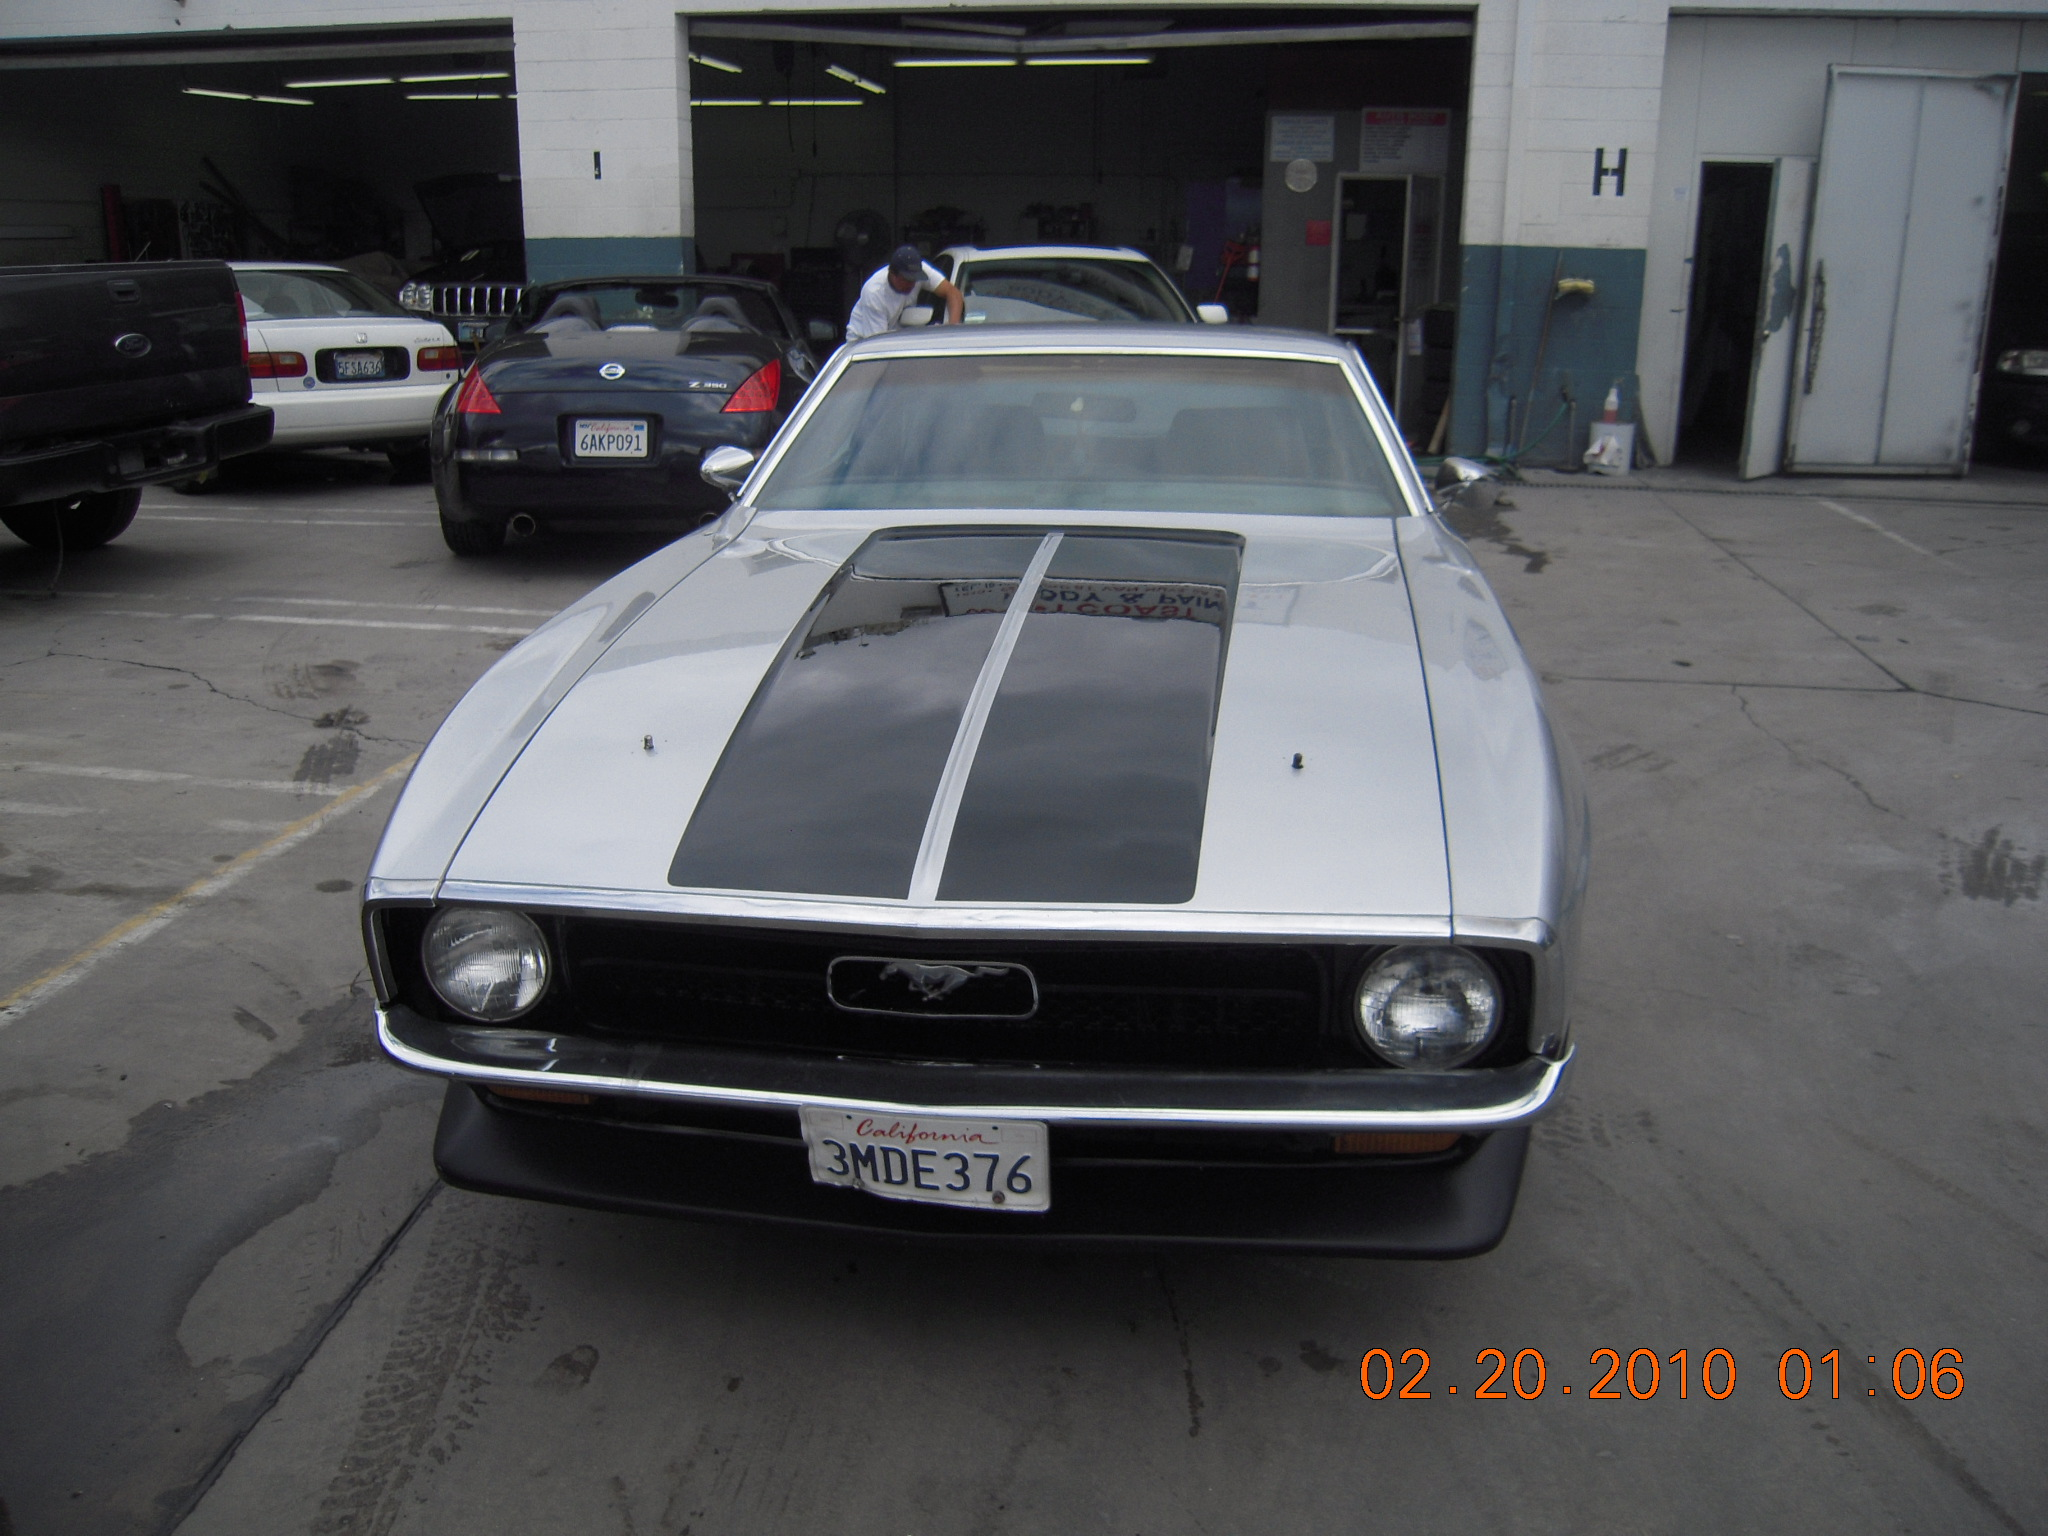 west-coast-body-and-paint-1971-mustang-mach-1-gray-36